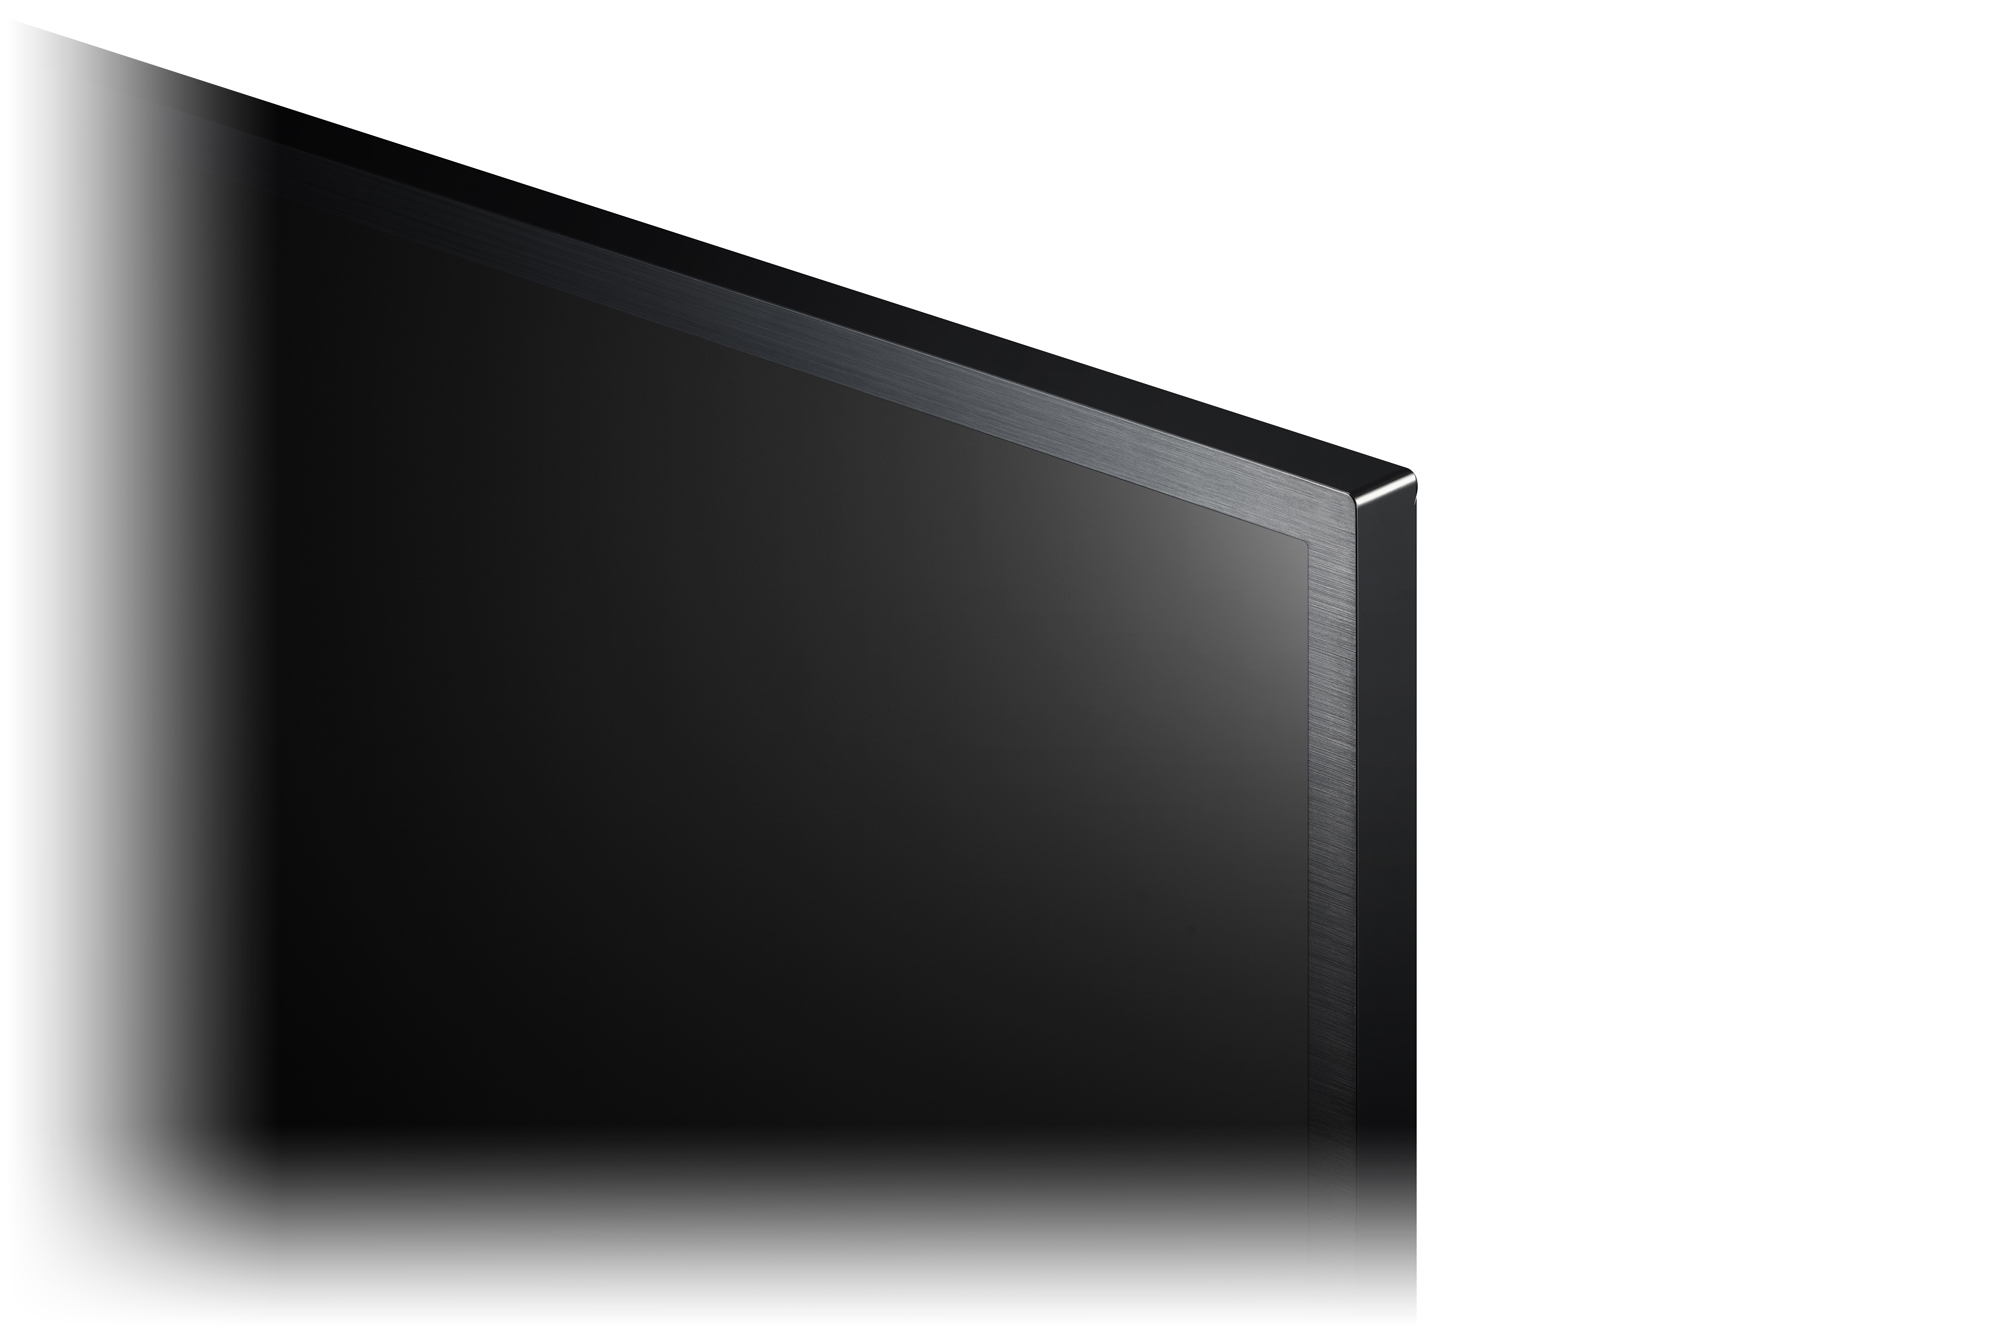 LG Smart TV Signage 55UT640S (EU) 11